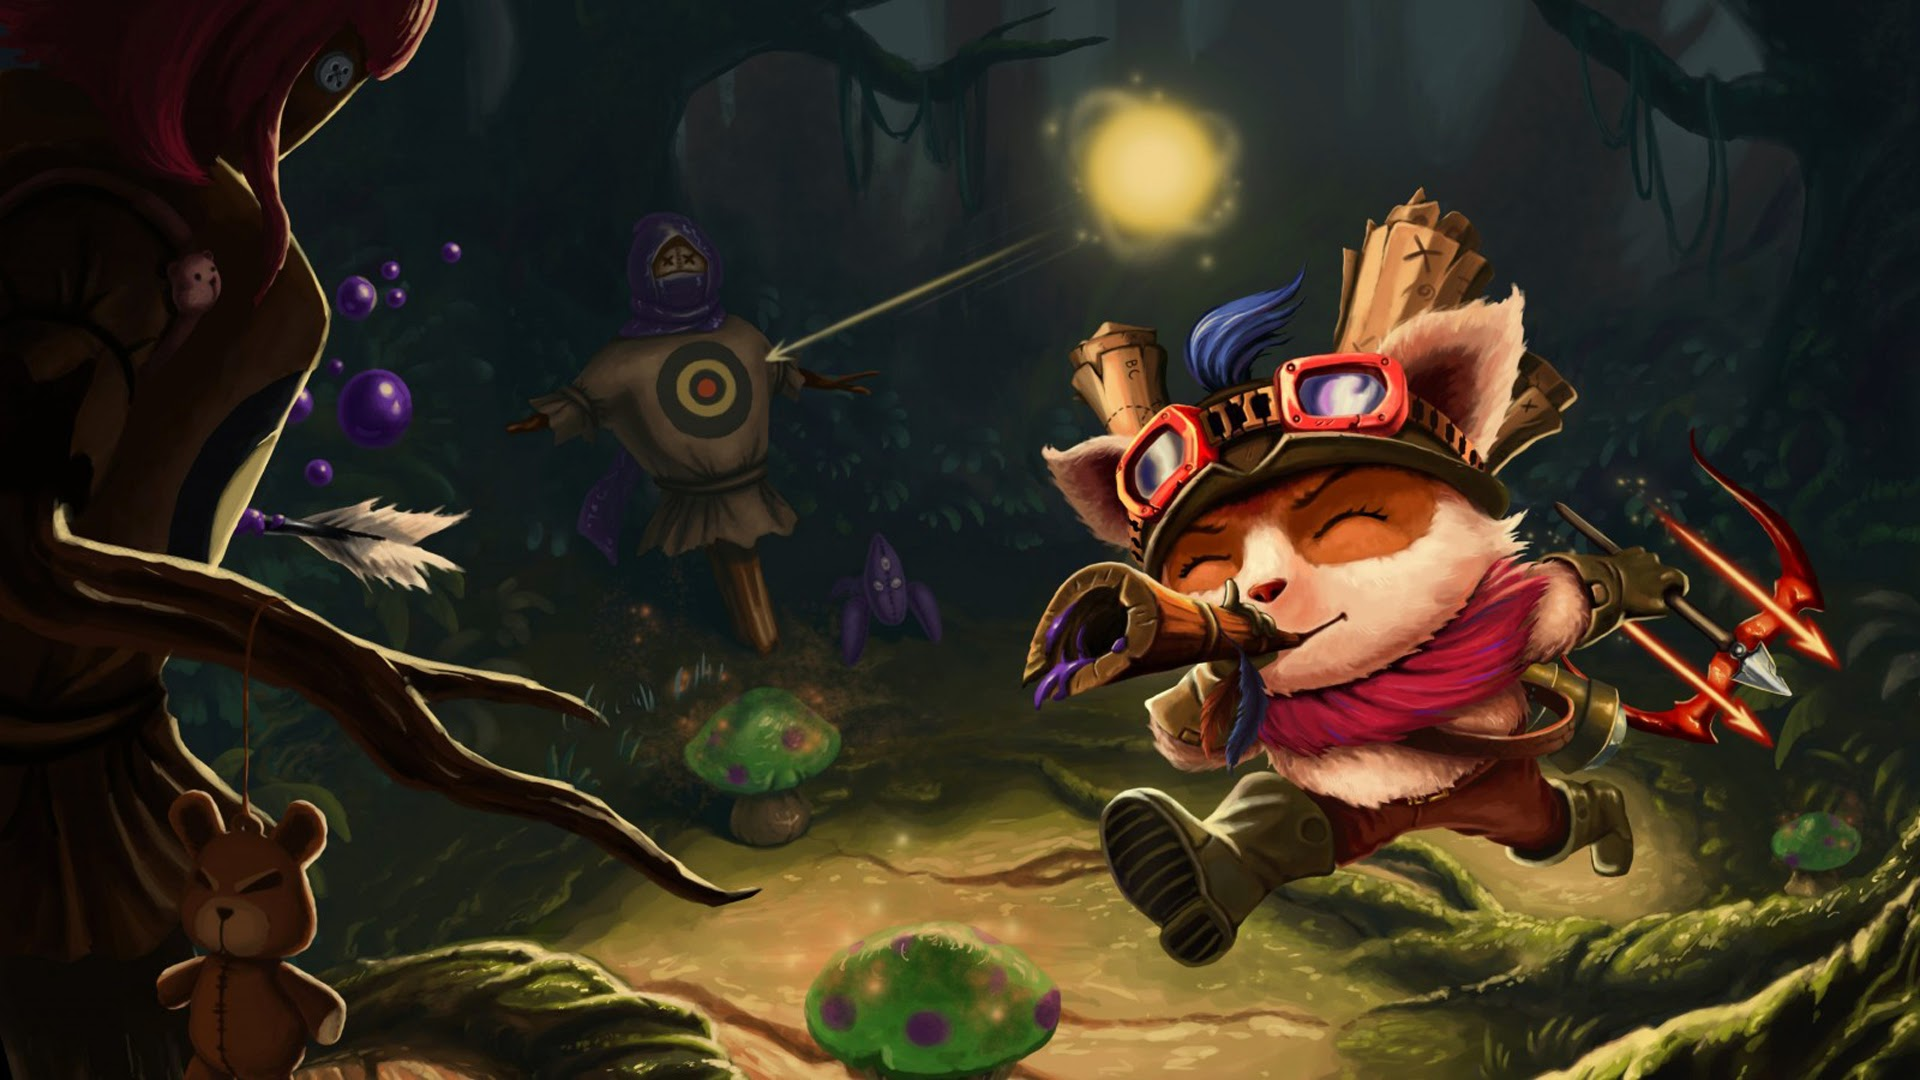 Teemo League of Legends 3t Wallpaper HD